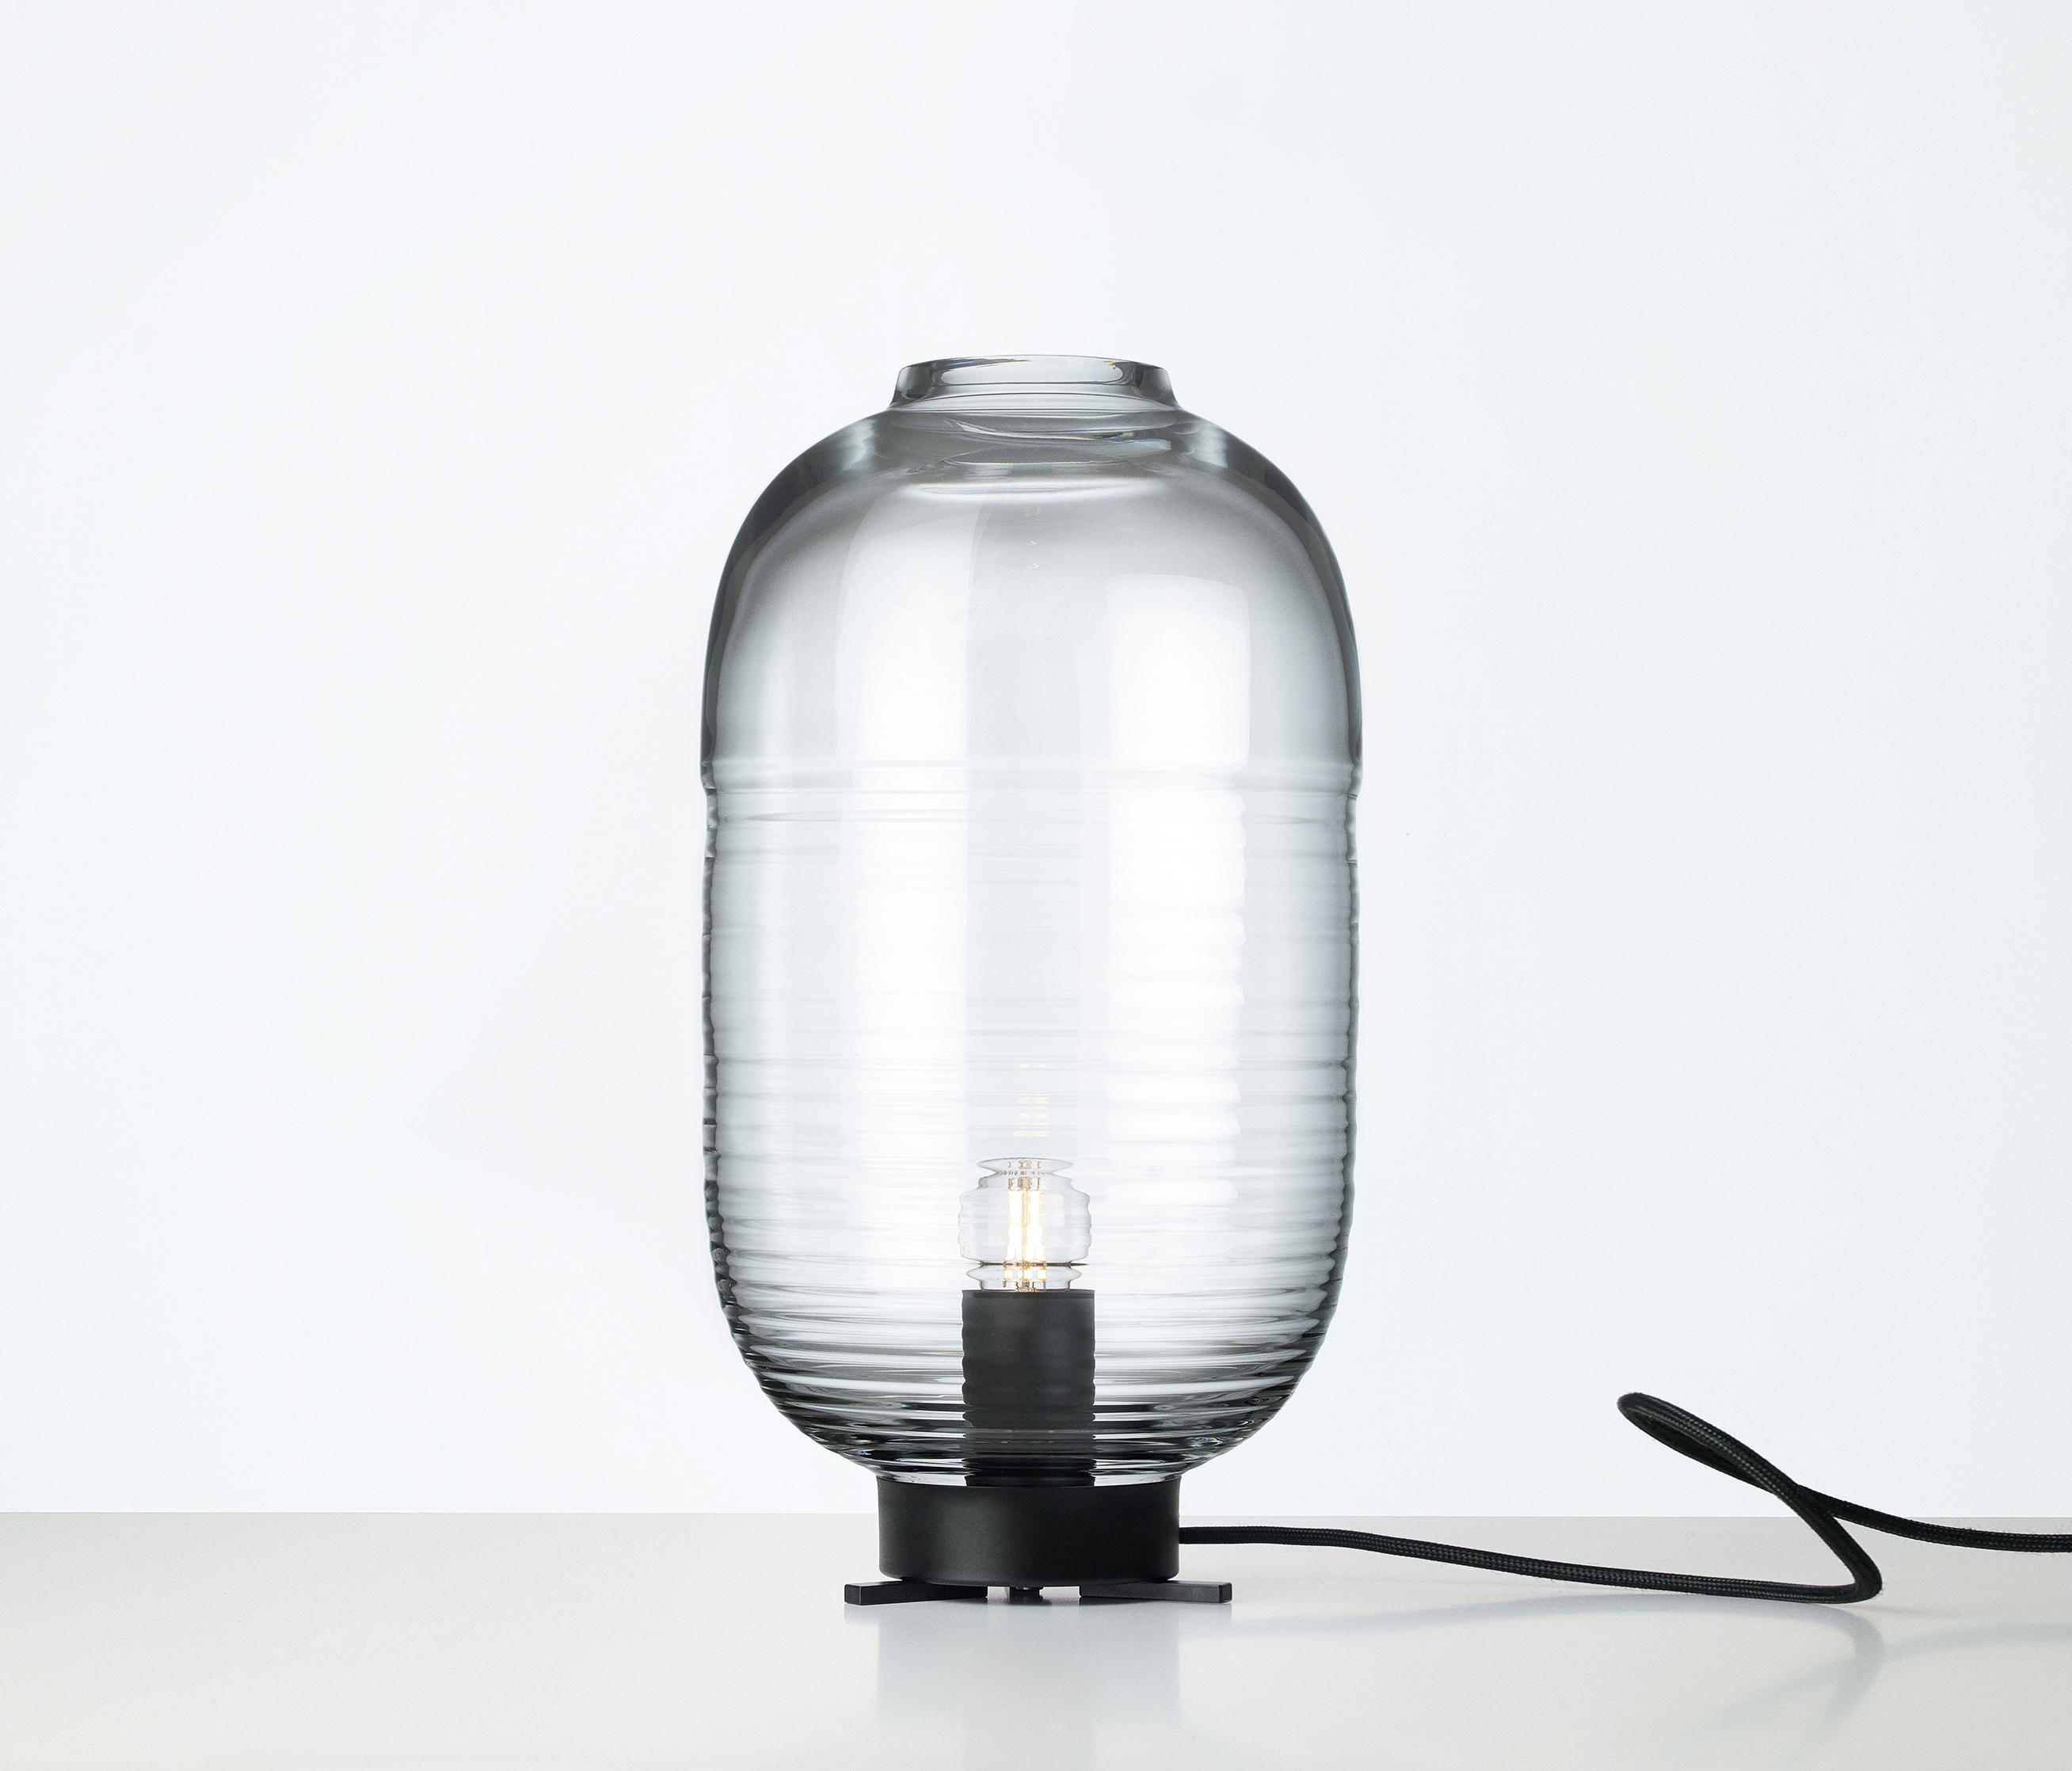 lantern table lamp general lighting from bomma architonic